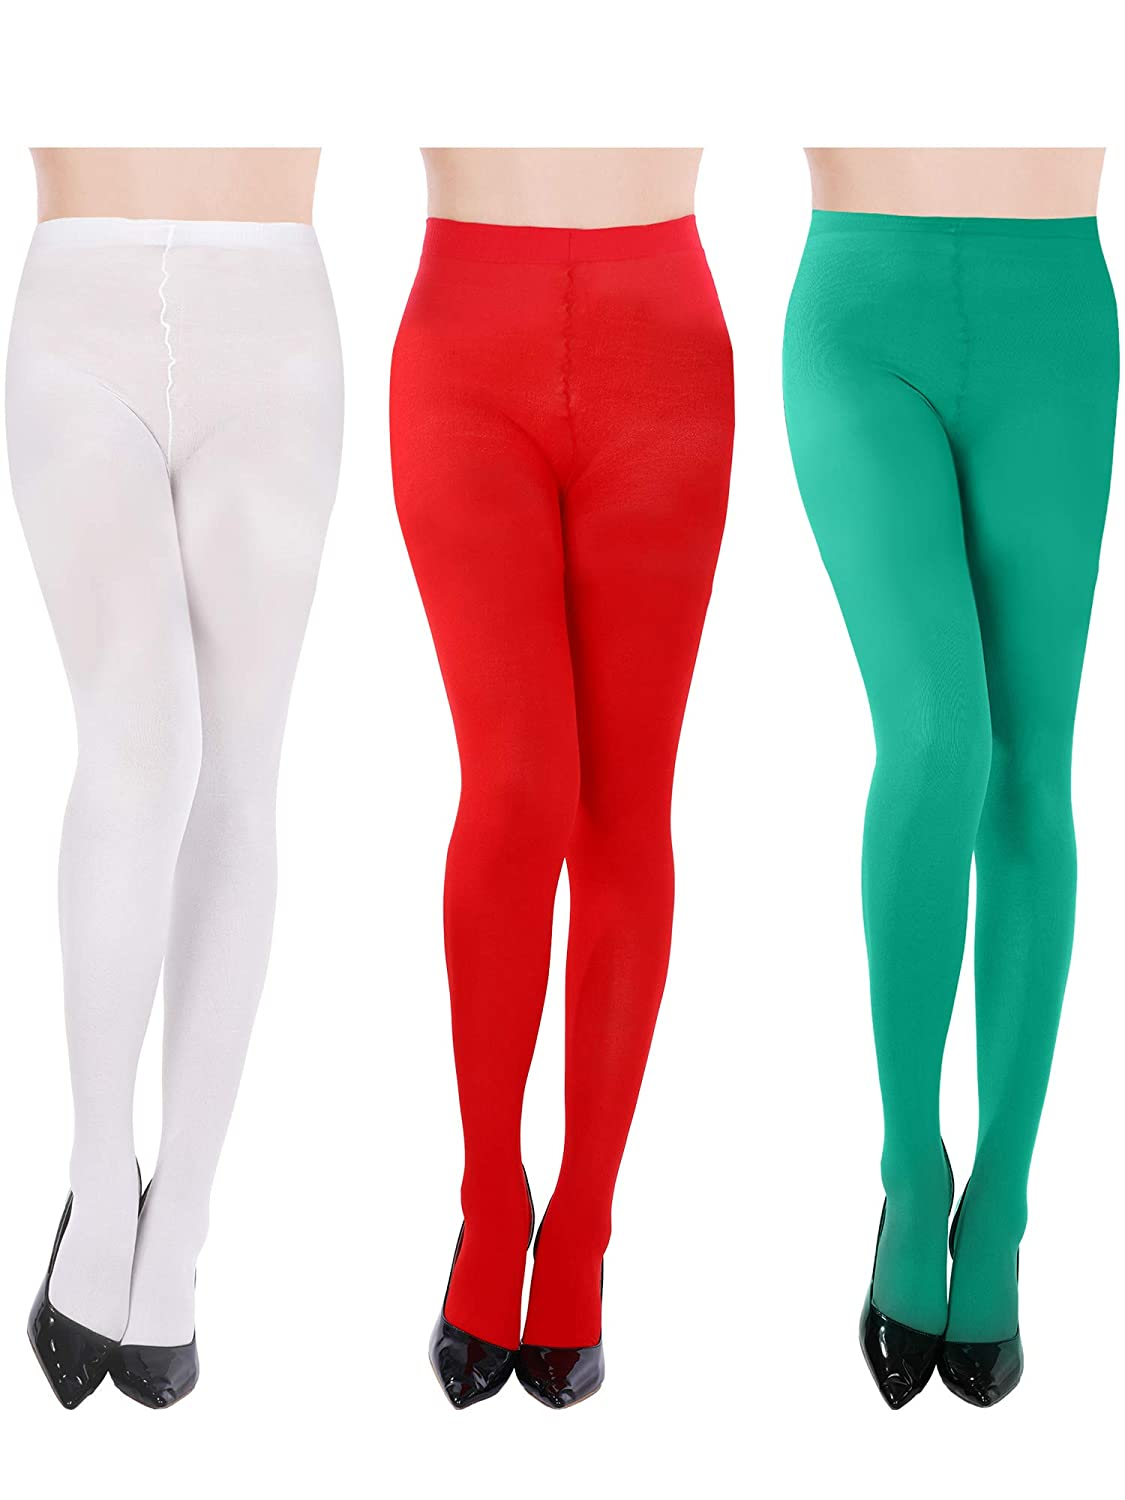 a79a4f45363a1 Amazon.com: Blulu 3 Pairs Women Striped Tights Full Length Stockings for  Christmas St. Patrick's Day Favors(Set3): Clothing